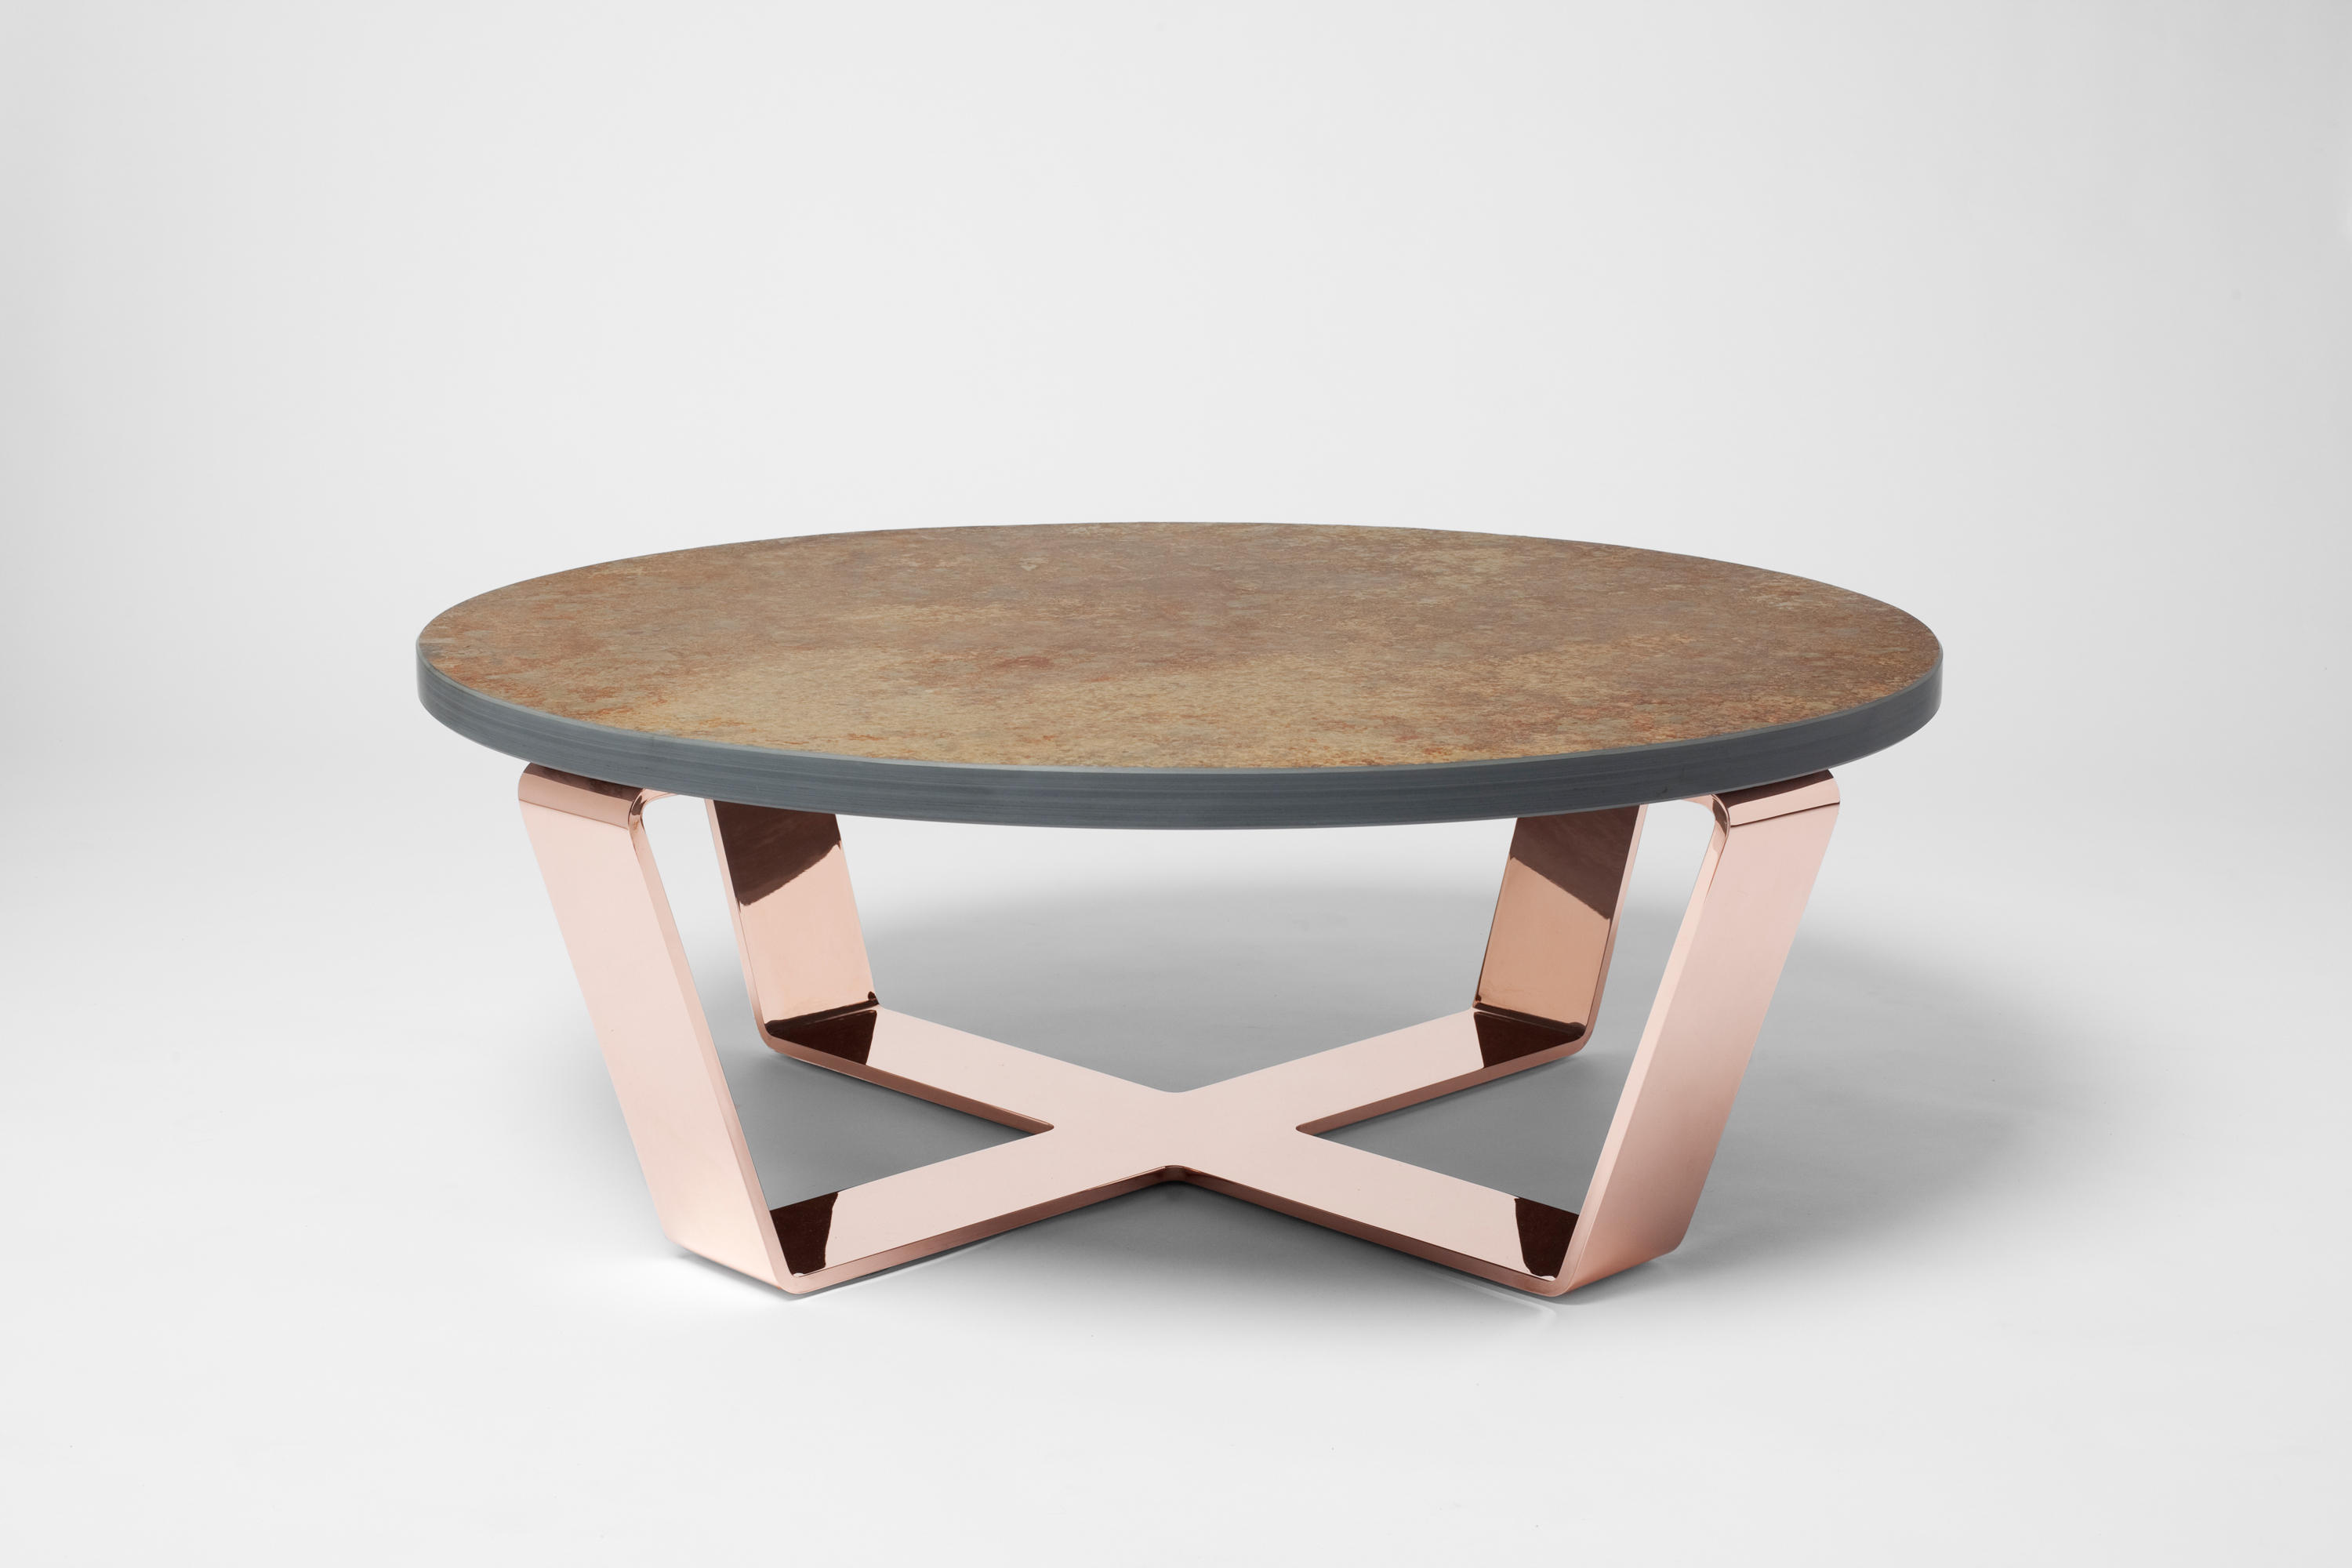 ... Slate Table Copper Brasil | Coffeetable By Edition Nikolas Kerl |  Coffee Tables